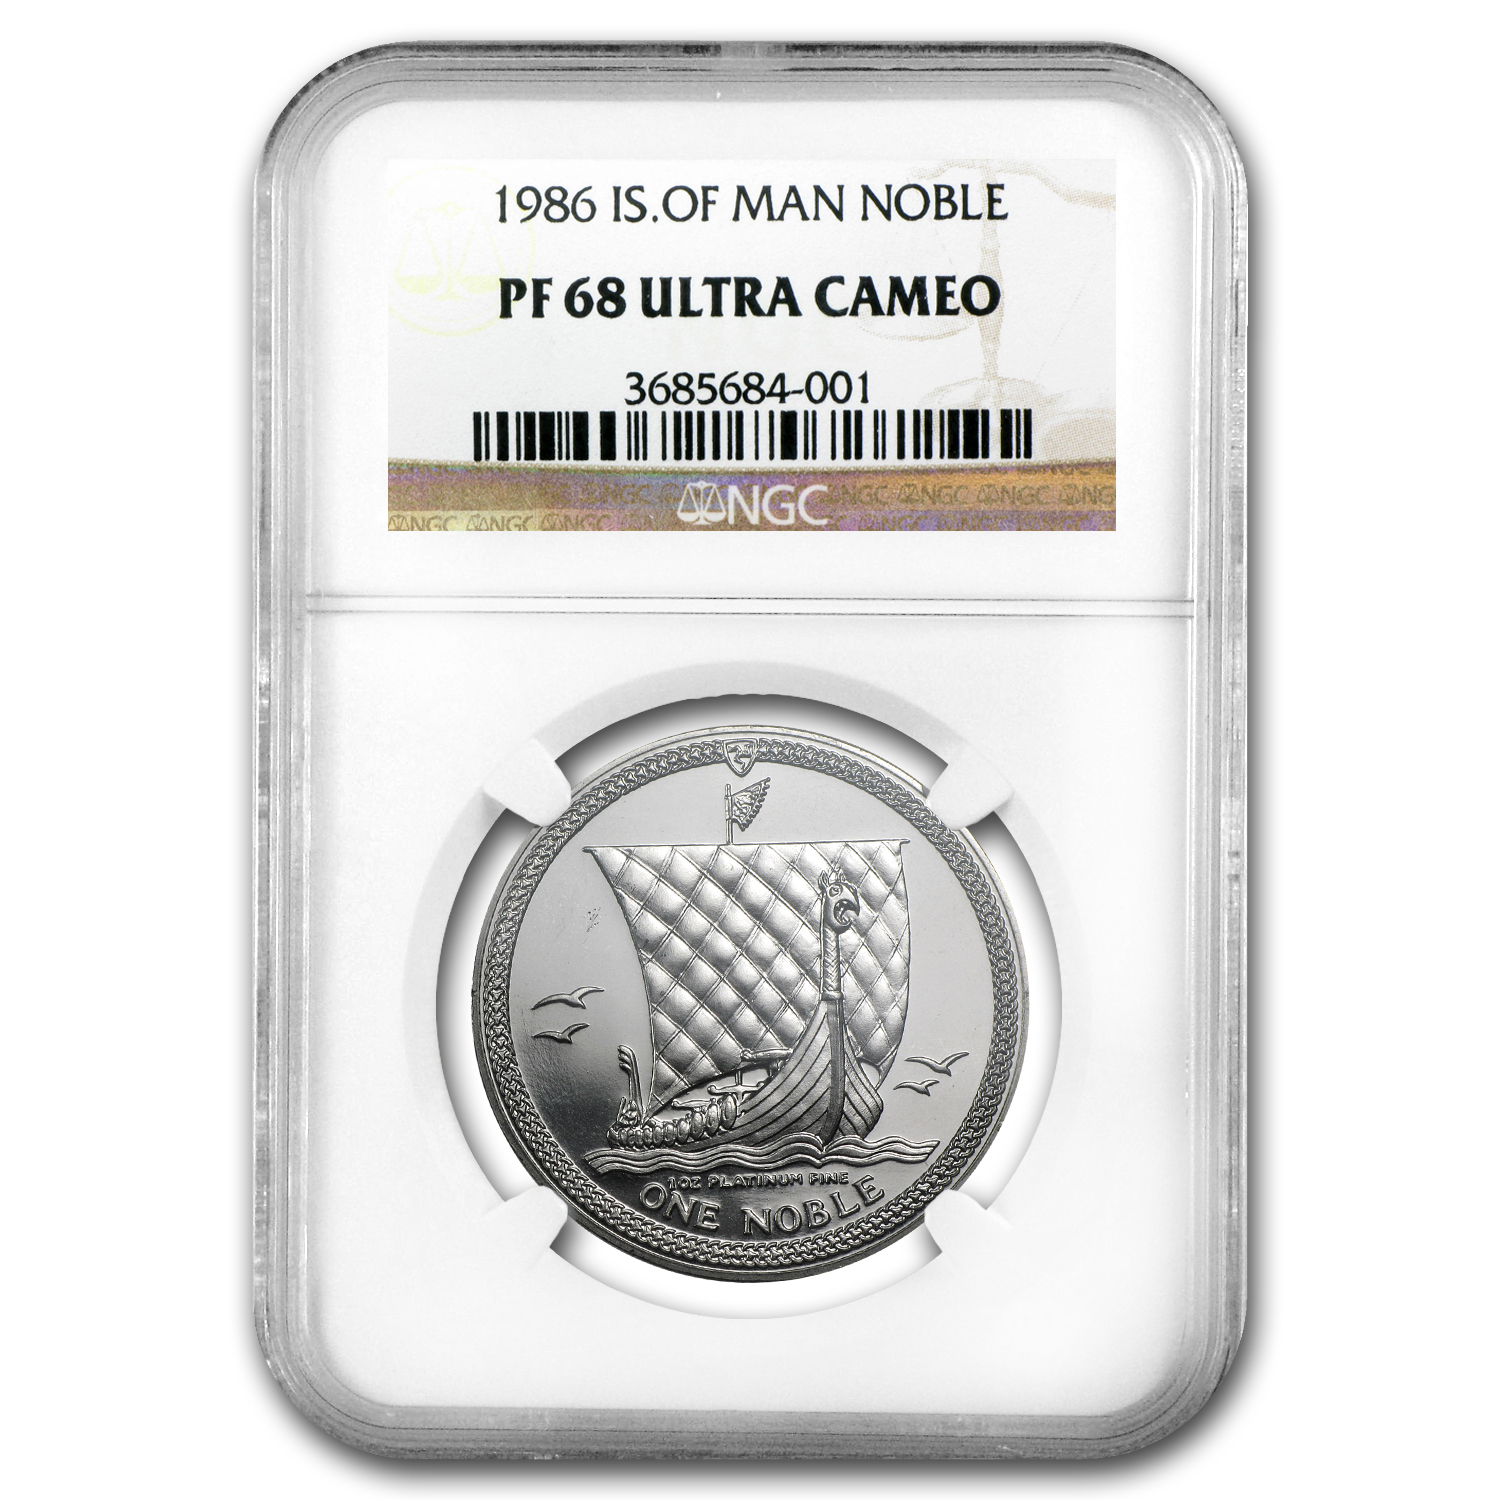 1986 Isle of Man 1 oz Platinum Noble PF-68 NGC